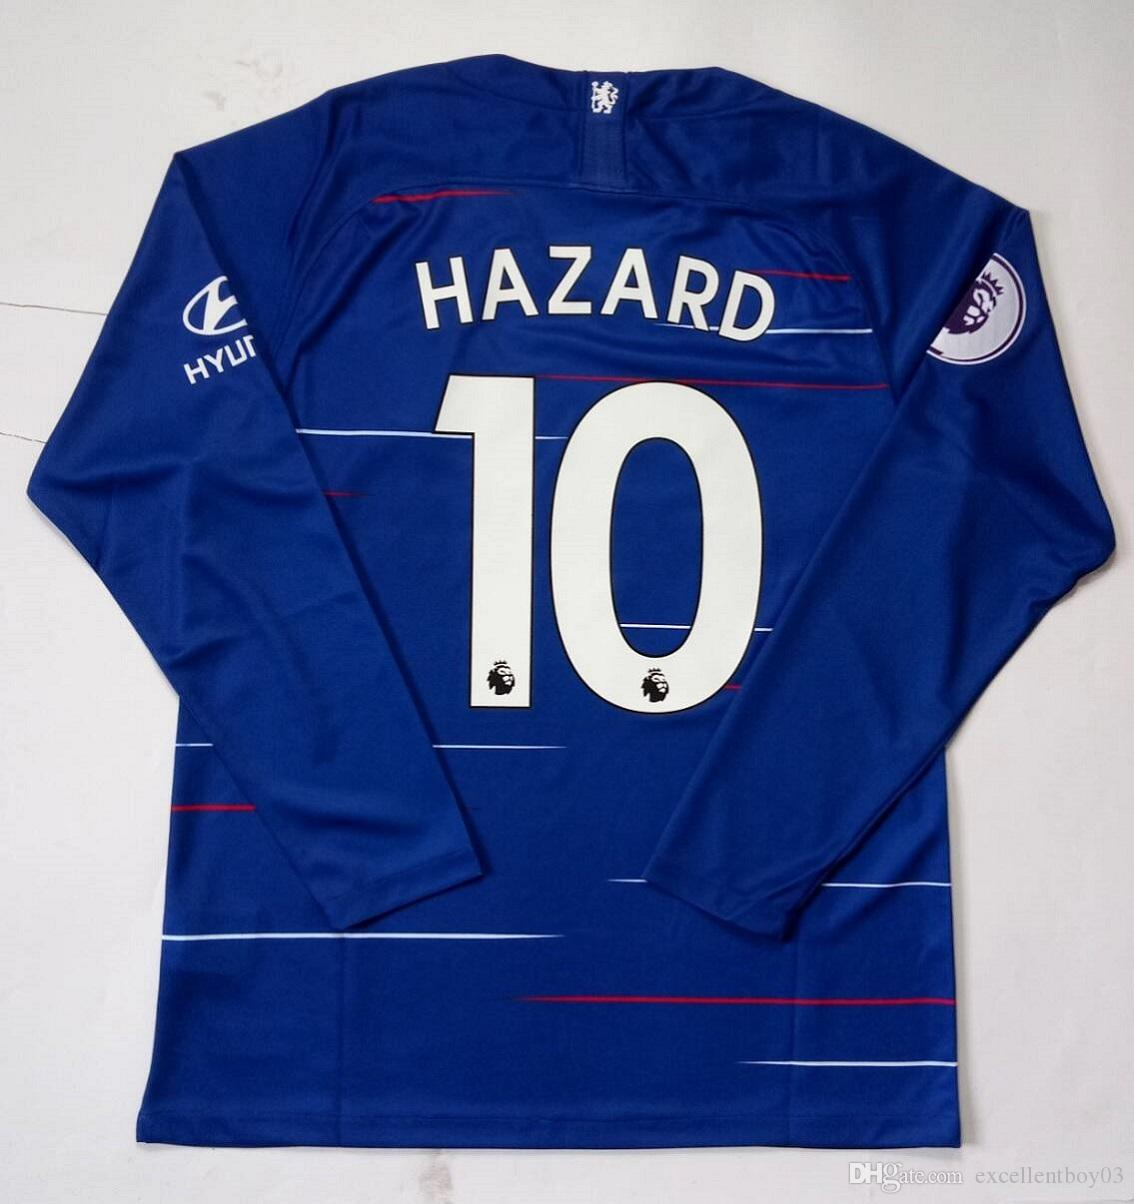 10 HAZARD Soccer Jersey Home Men s Color Blue Long Fan Version 2019 ... 650250cc1